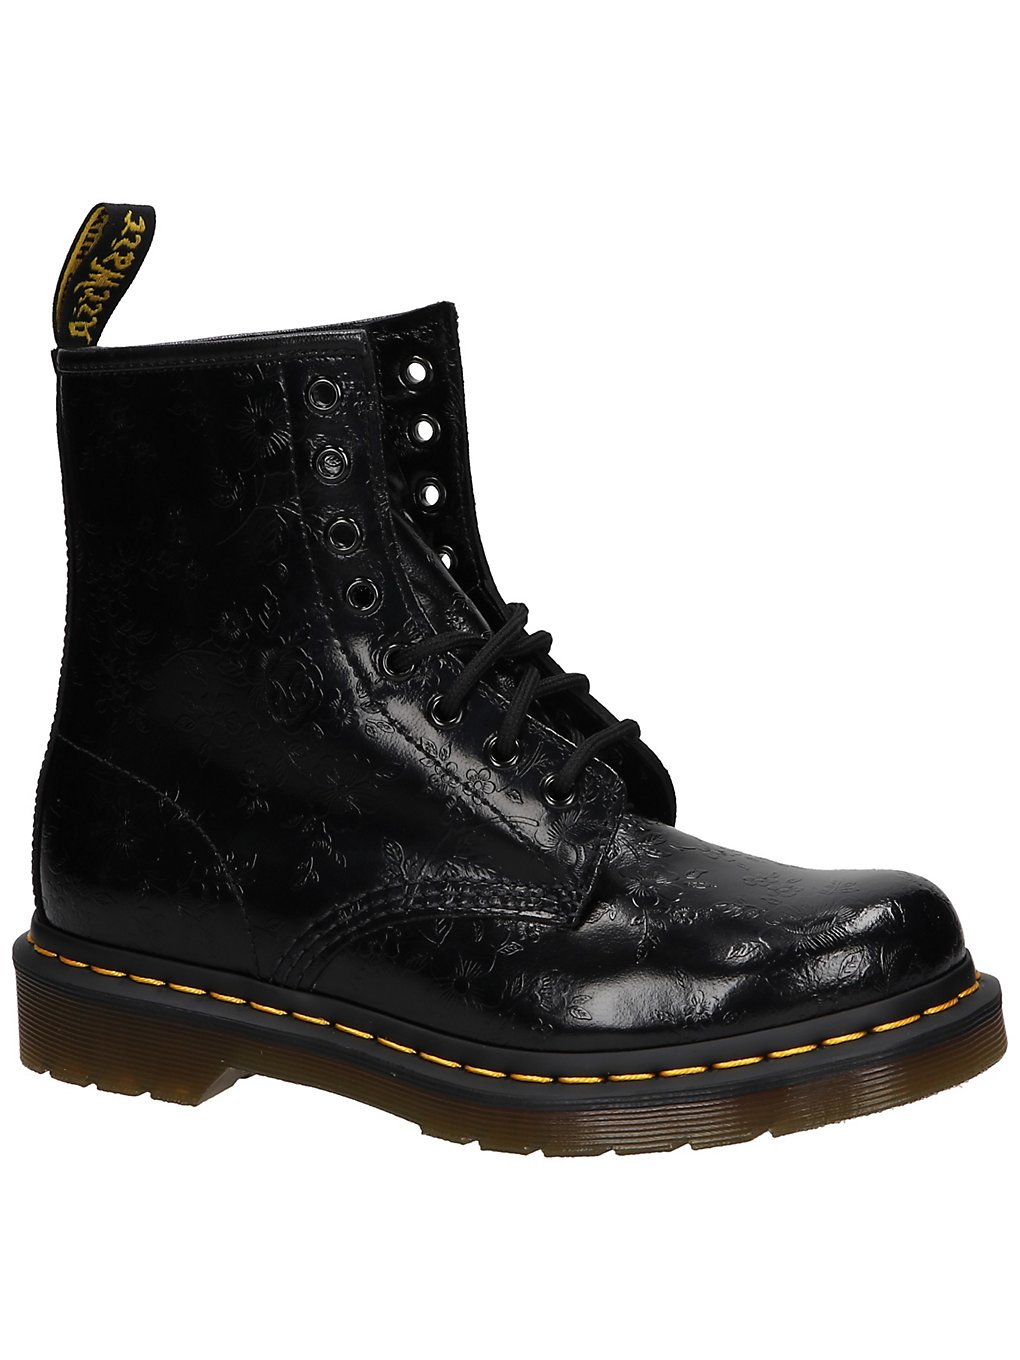 Dr. Martens 60 QQ Flowers 8 Eye Boots Women